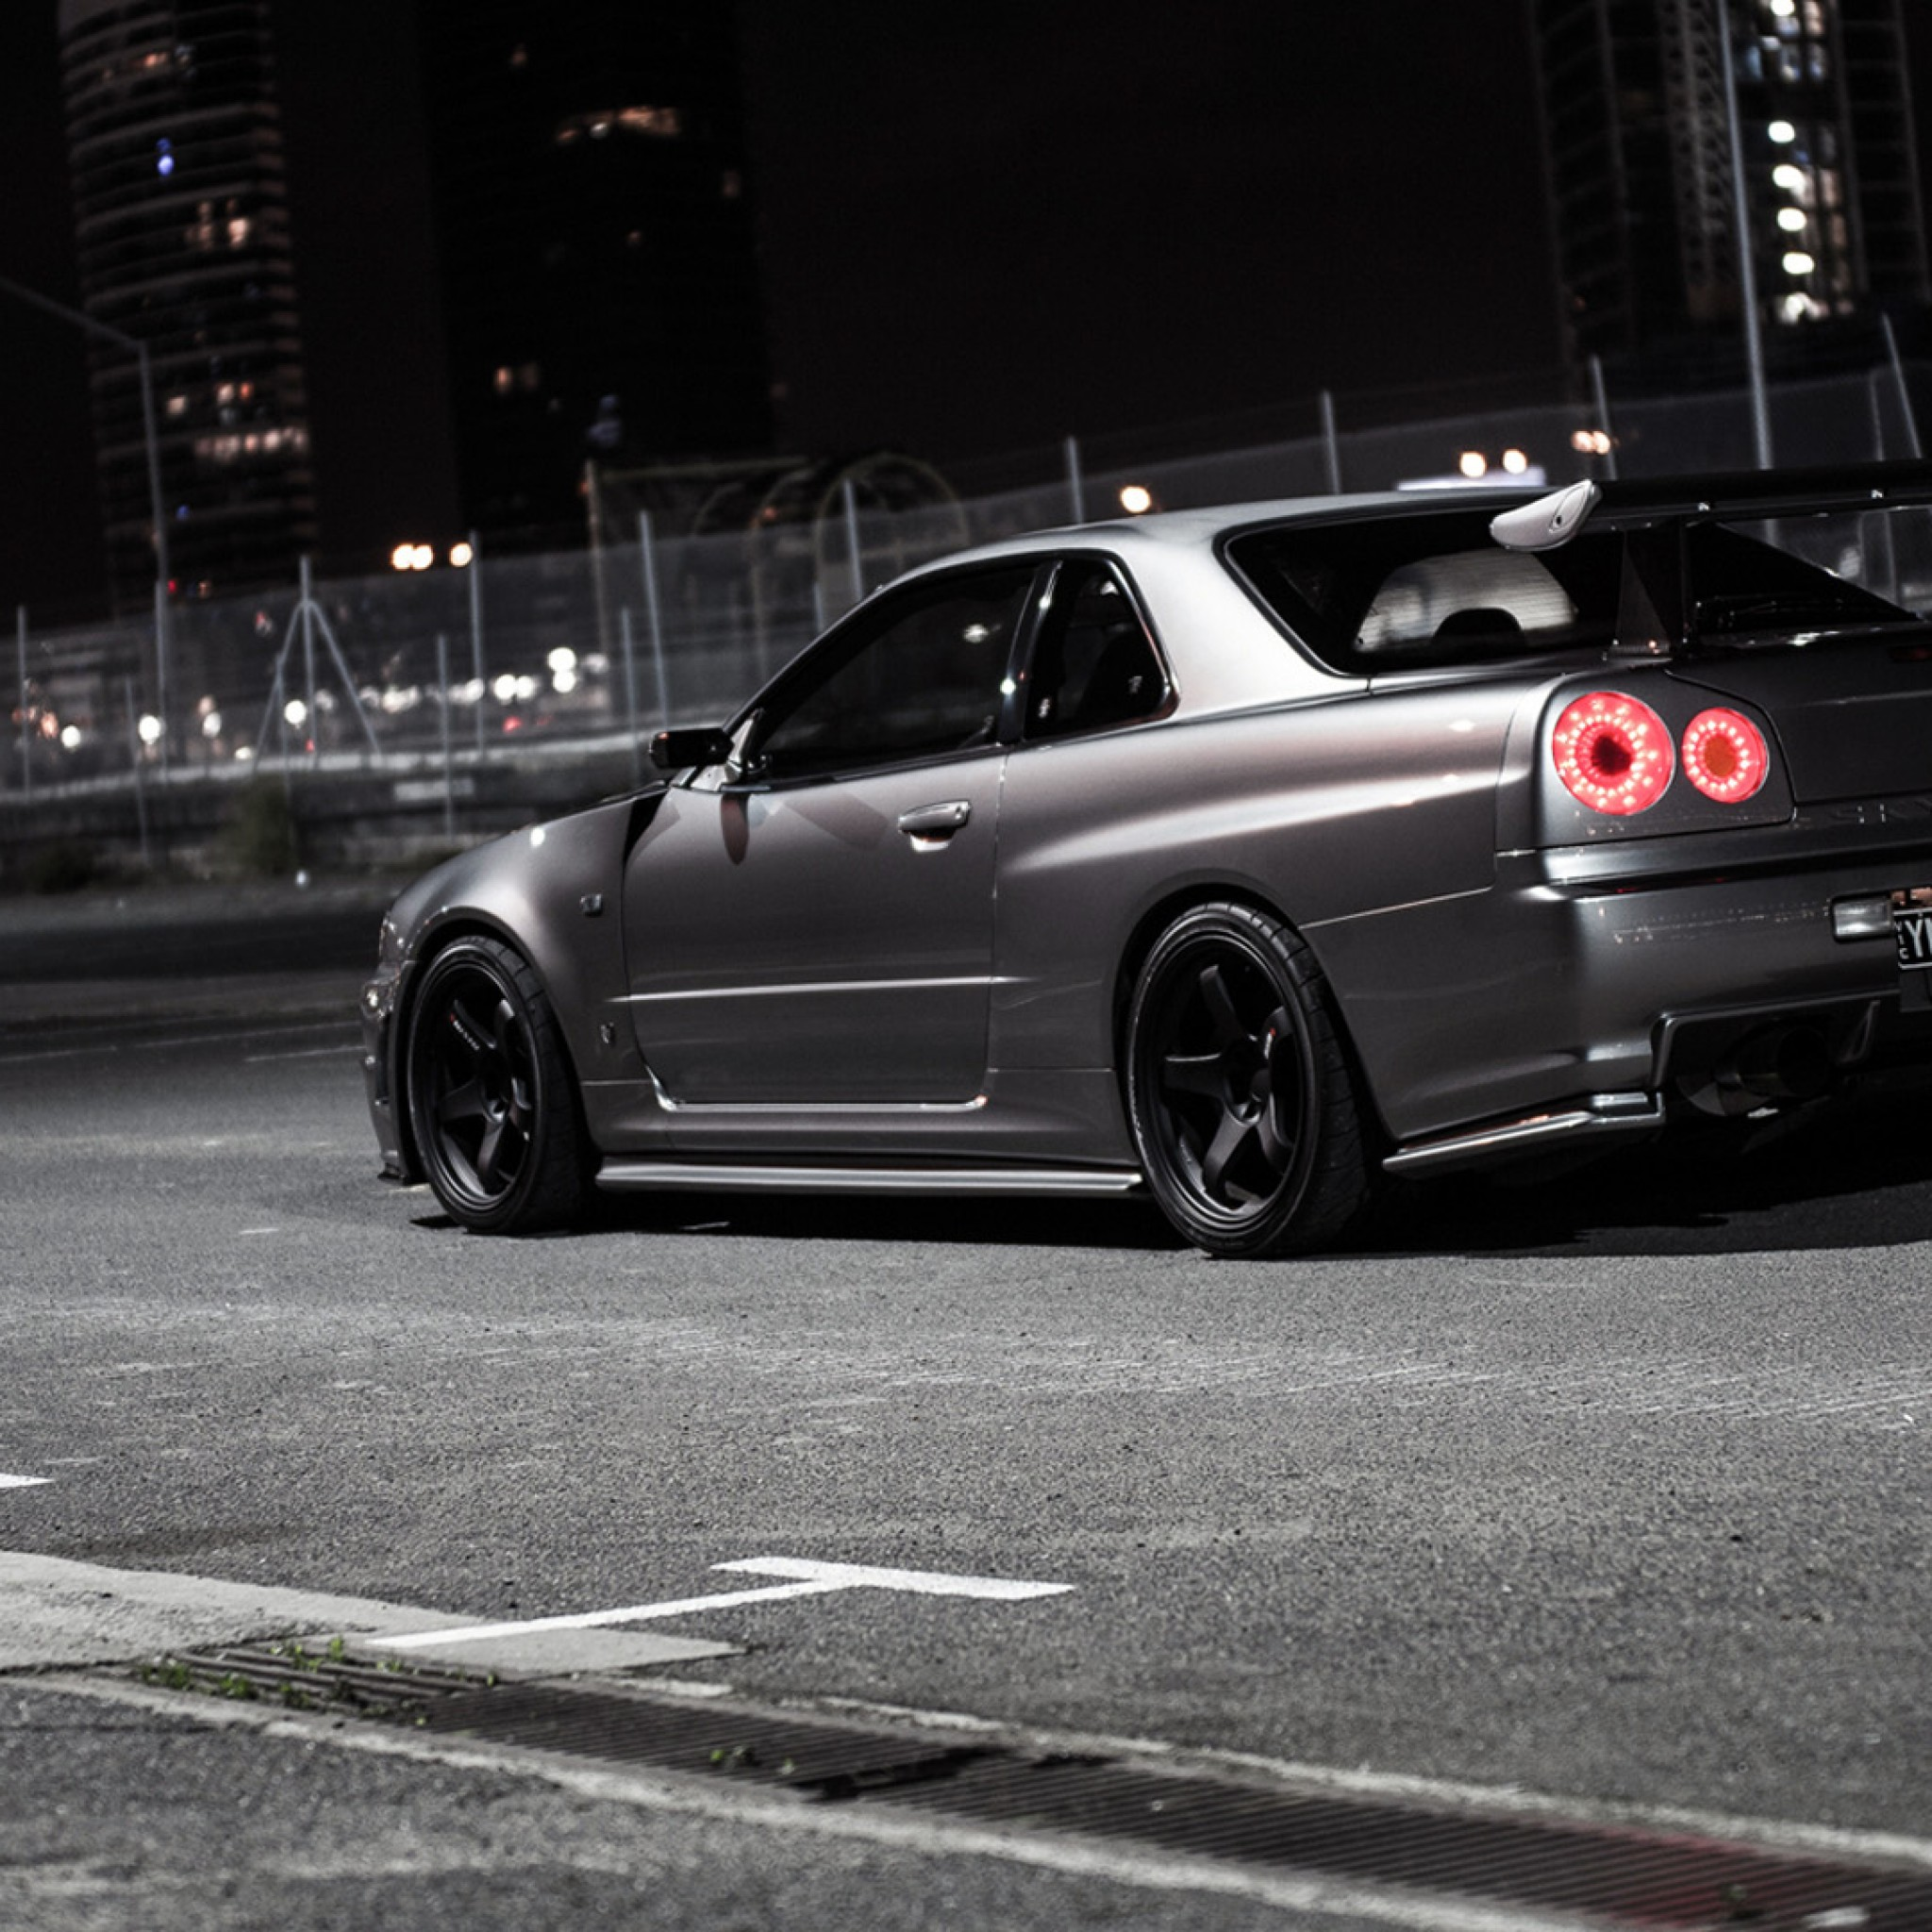 Nissan Gtr Ipad Wallpaper: GTR IPhone Wallpaper